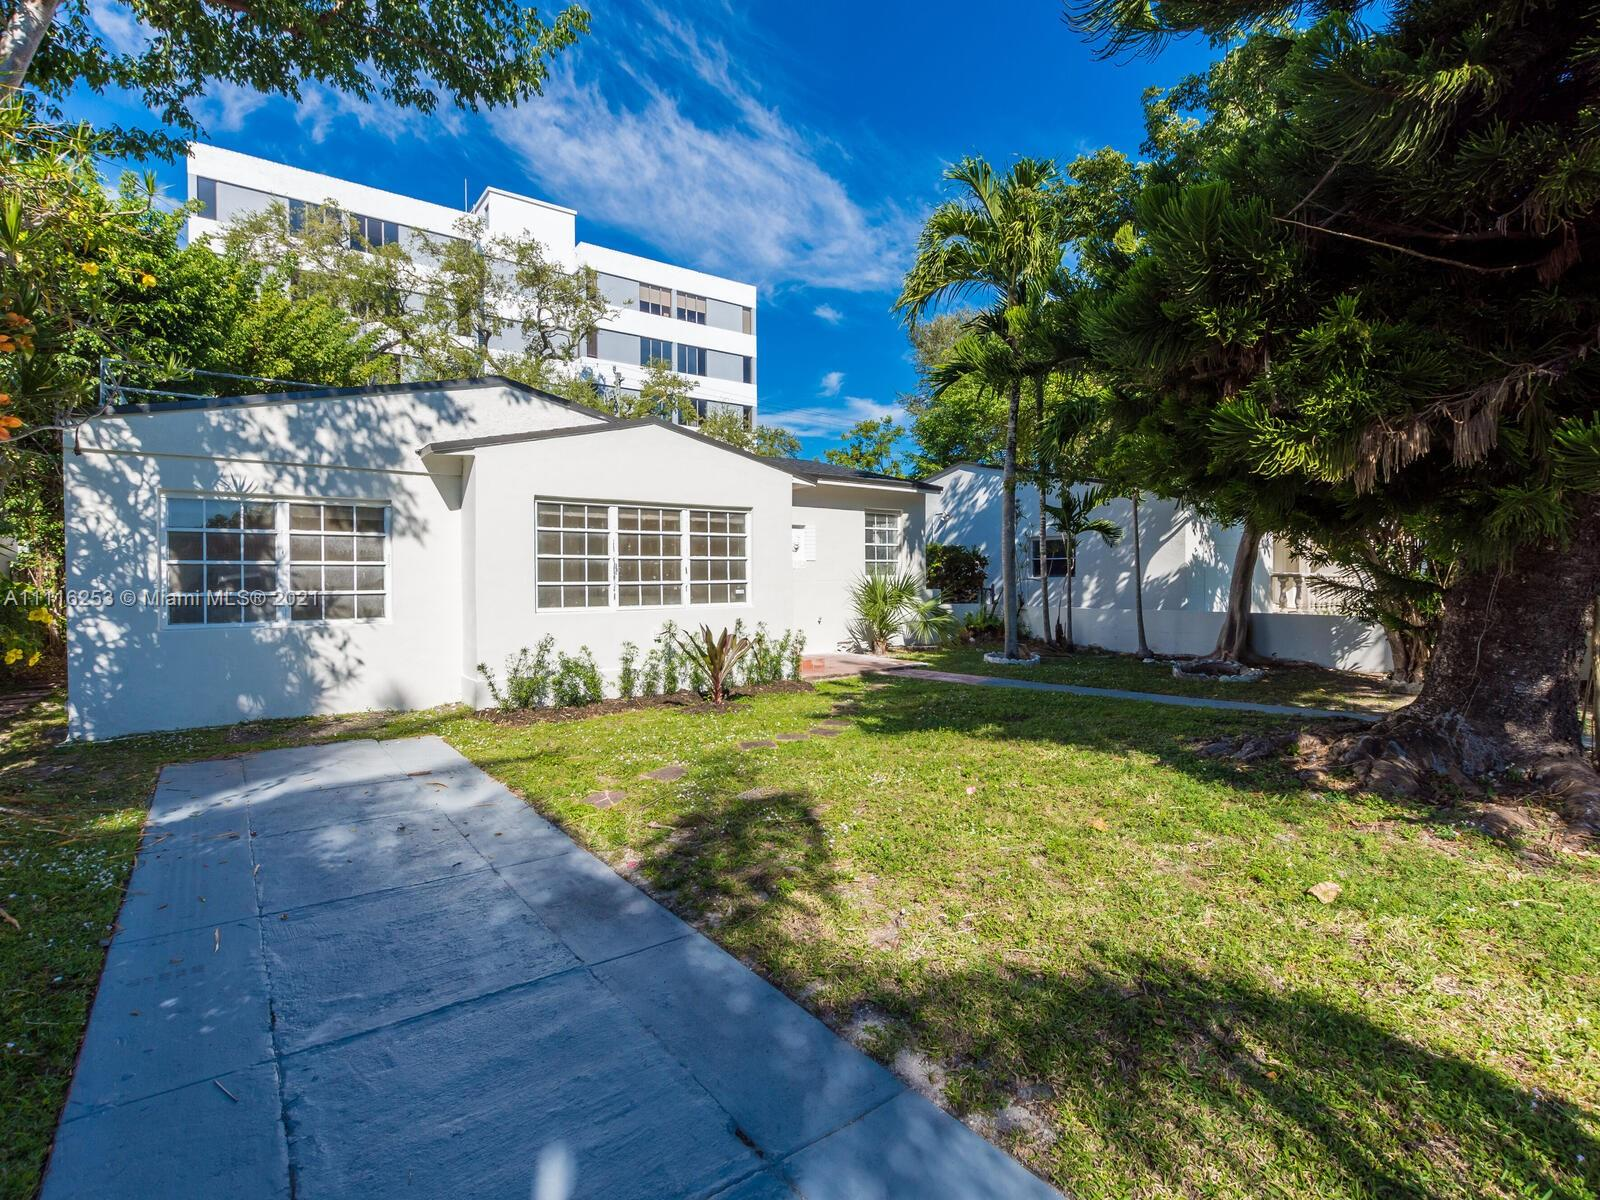 Single Family Home,For Sale,2025 SW 22nd Ter, Miami, Florida 33145,Brickell,realty,broker,condos near me